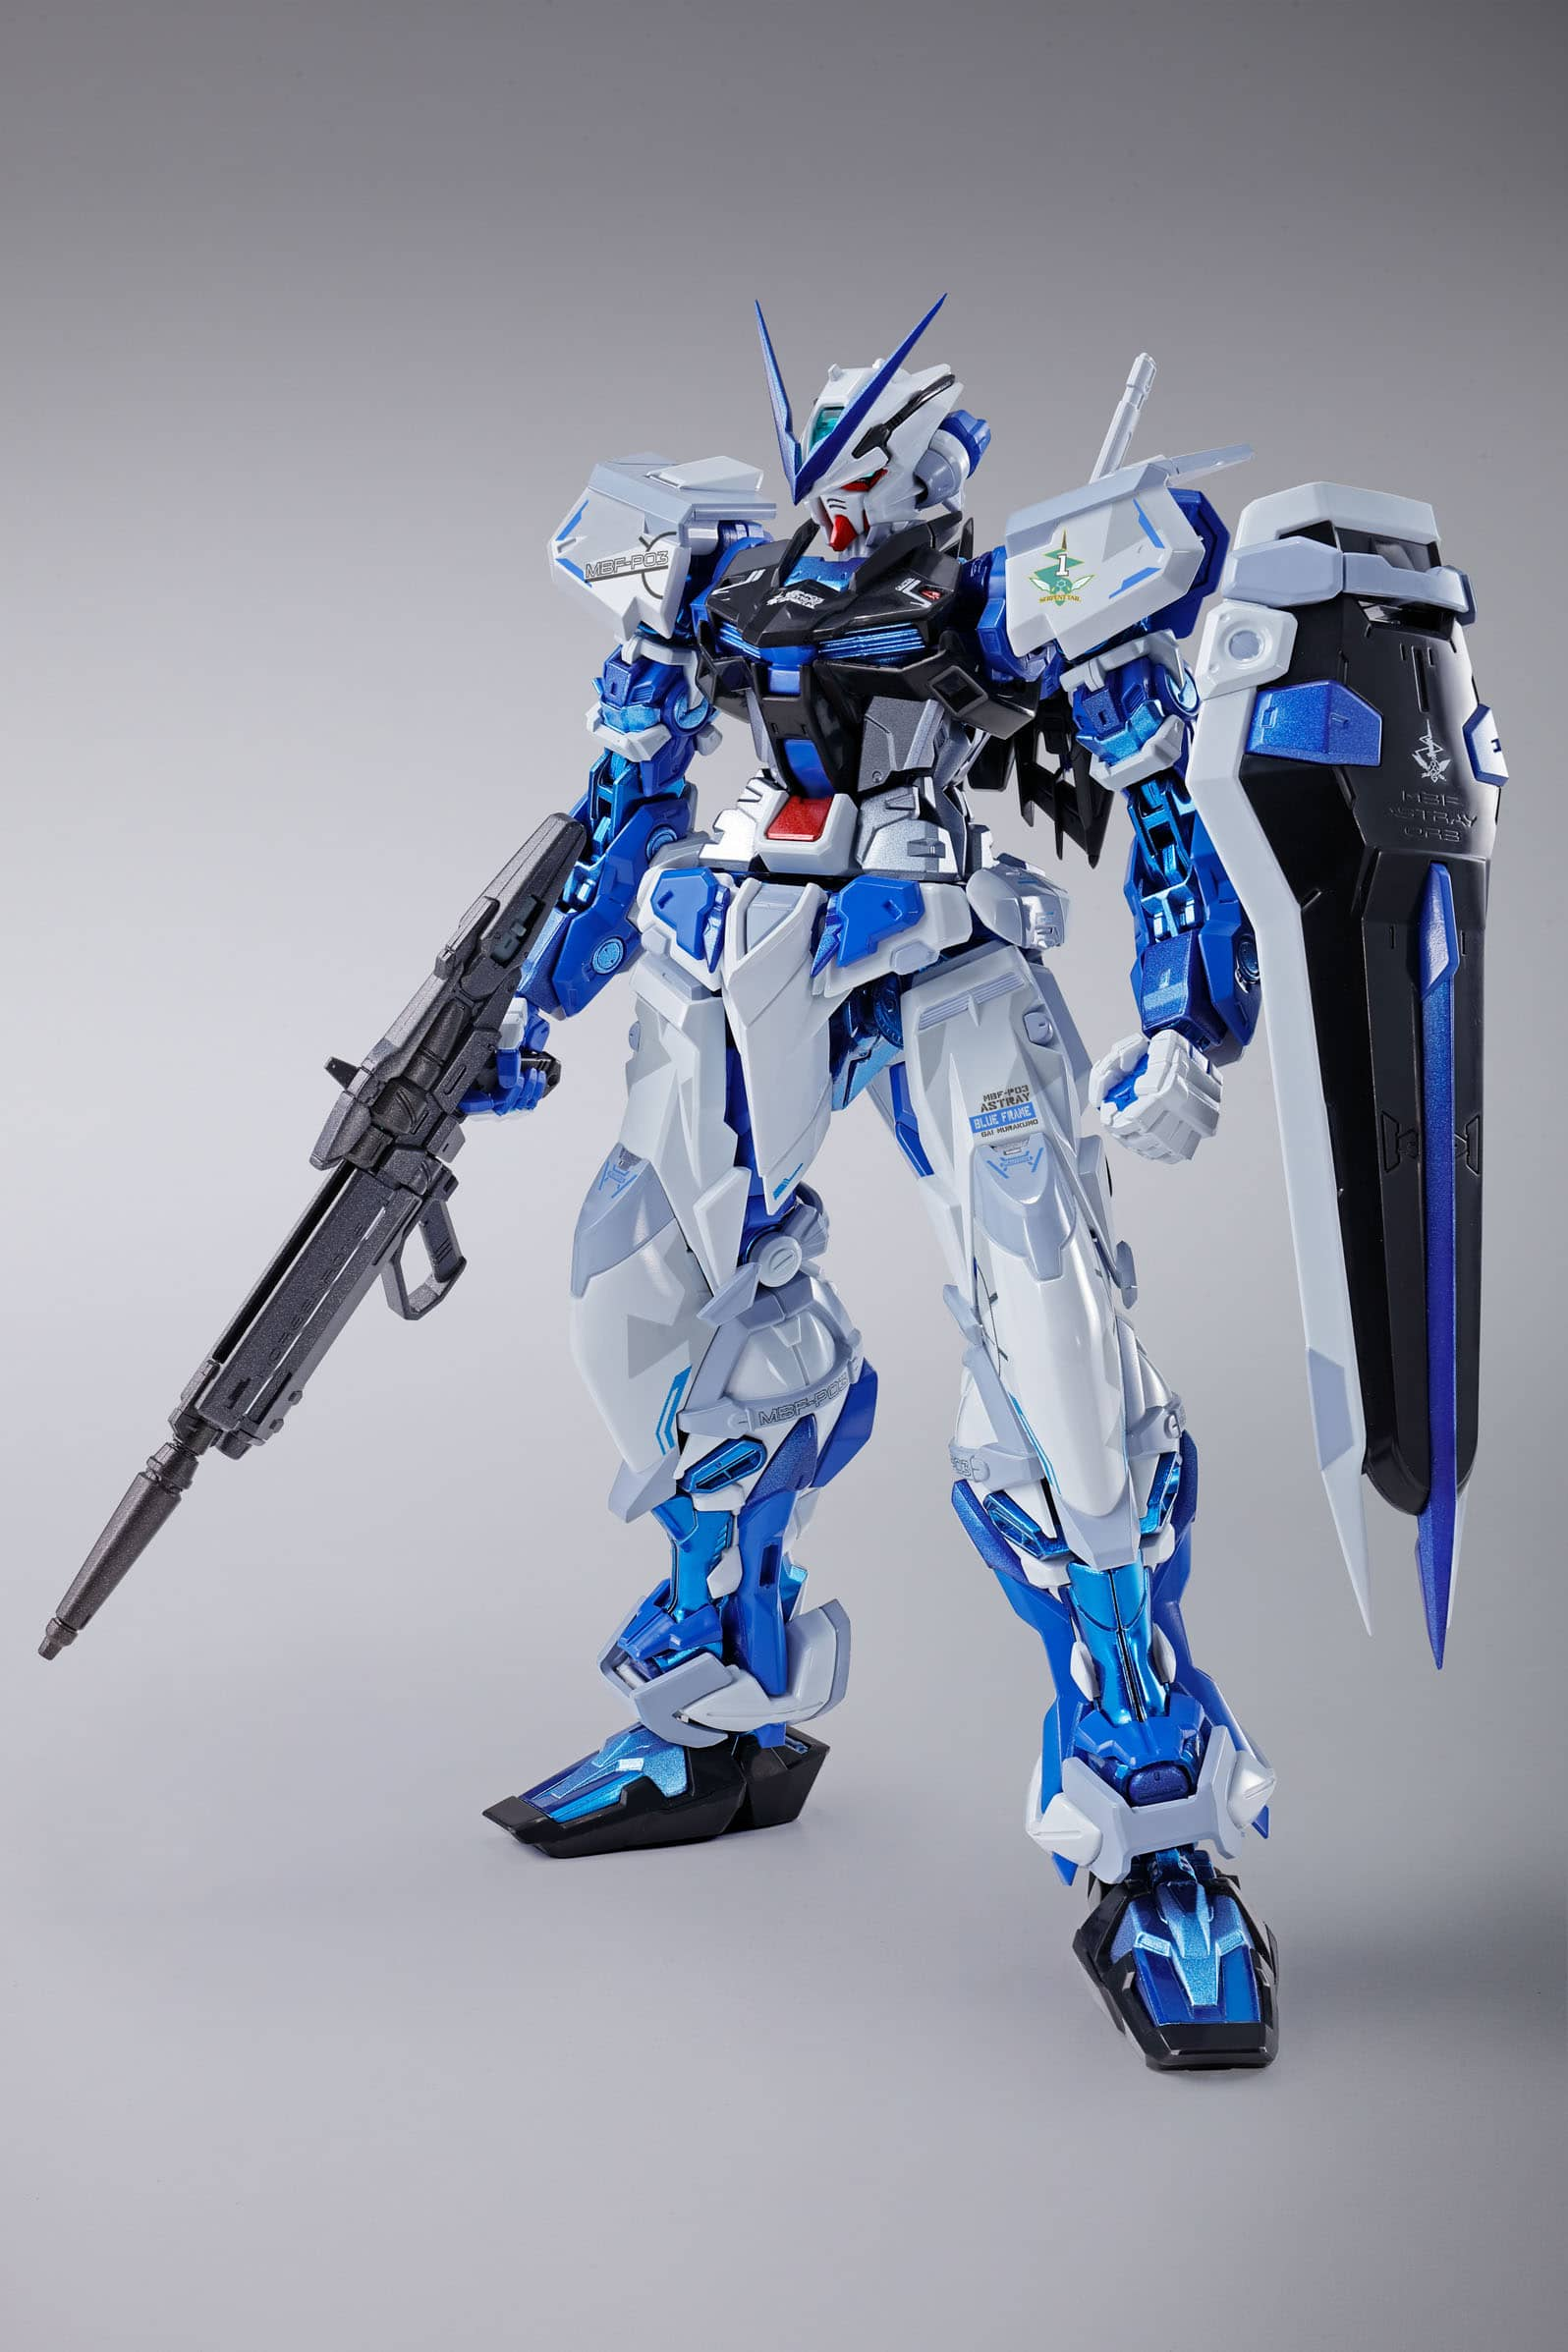 GUNDAM ASTRAY BLUE FRAME FIGURA 18 CM MOBILE SUIT GUNDAM SEED ASTRAYS METAL BUILD